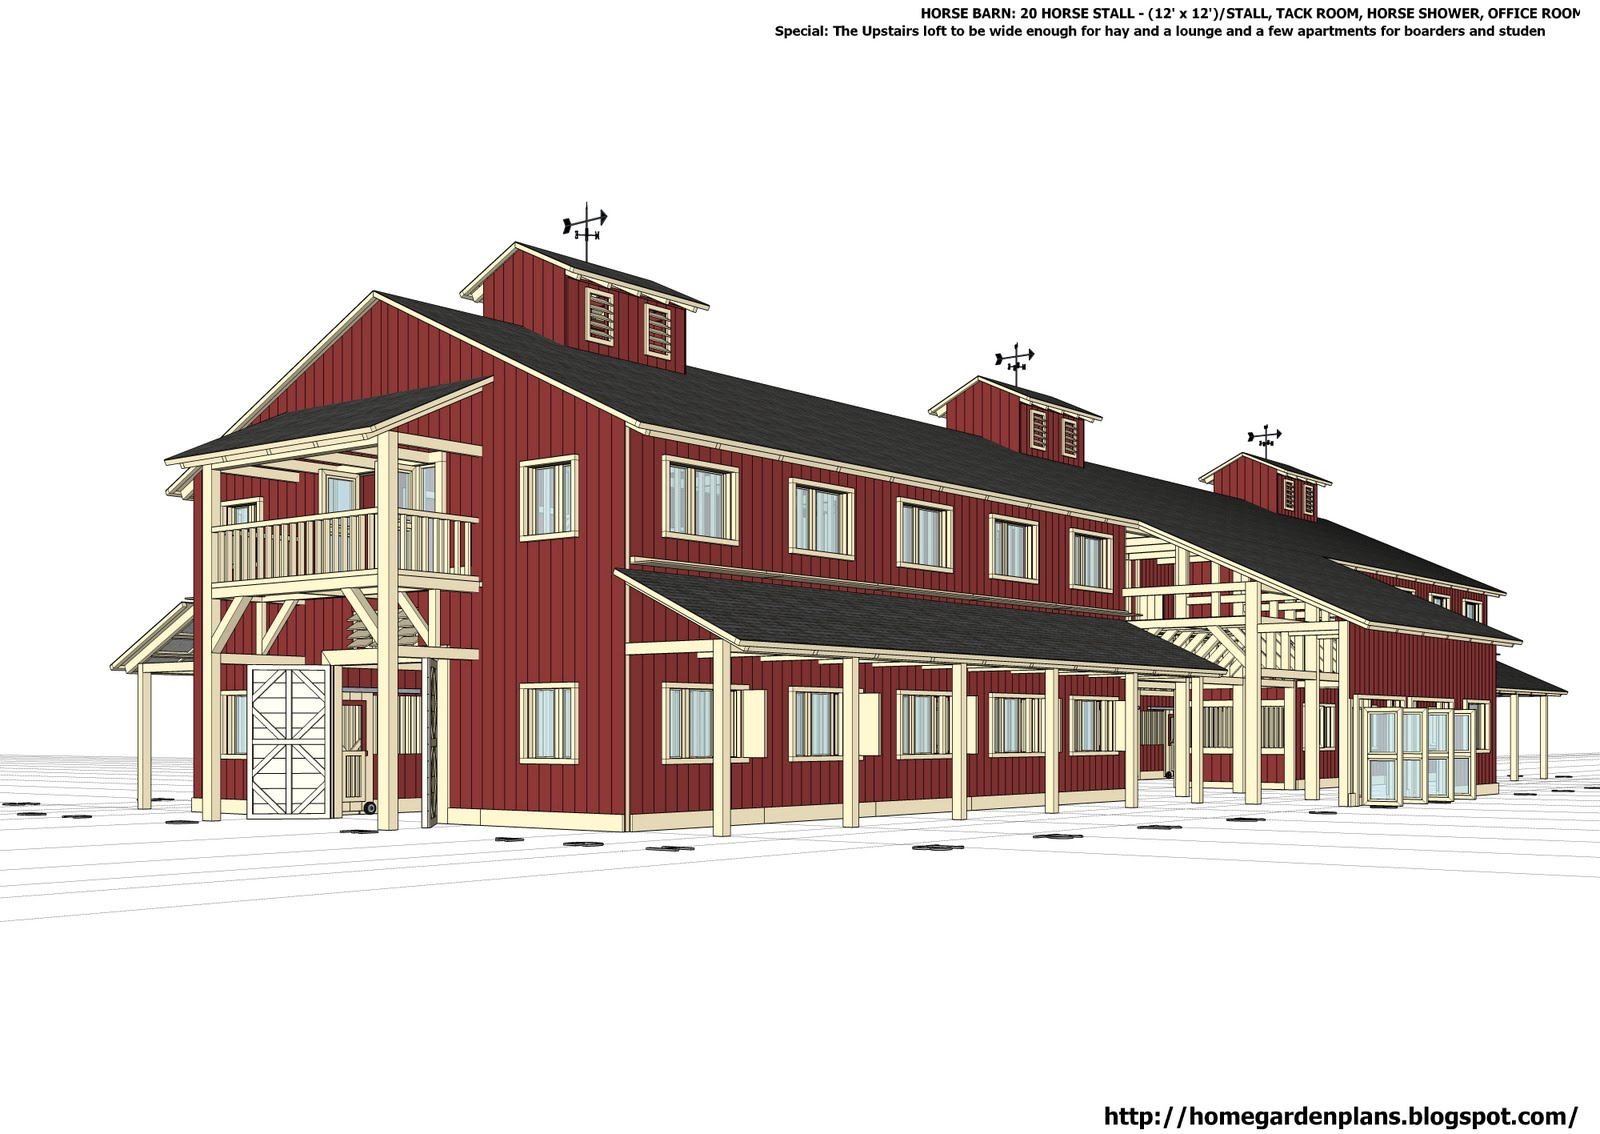 82 2 horse barn ideas 2 stall horse barn plan with loft for Barn plans